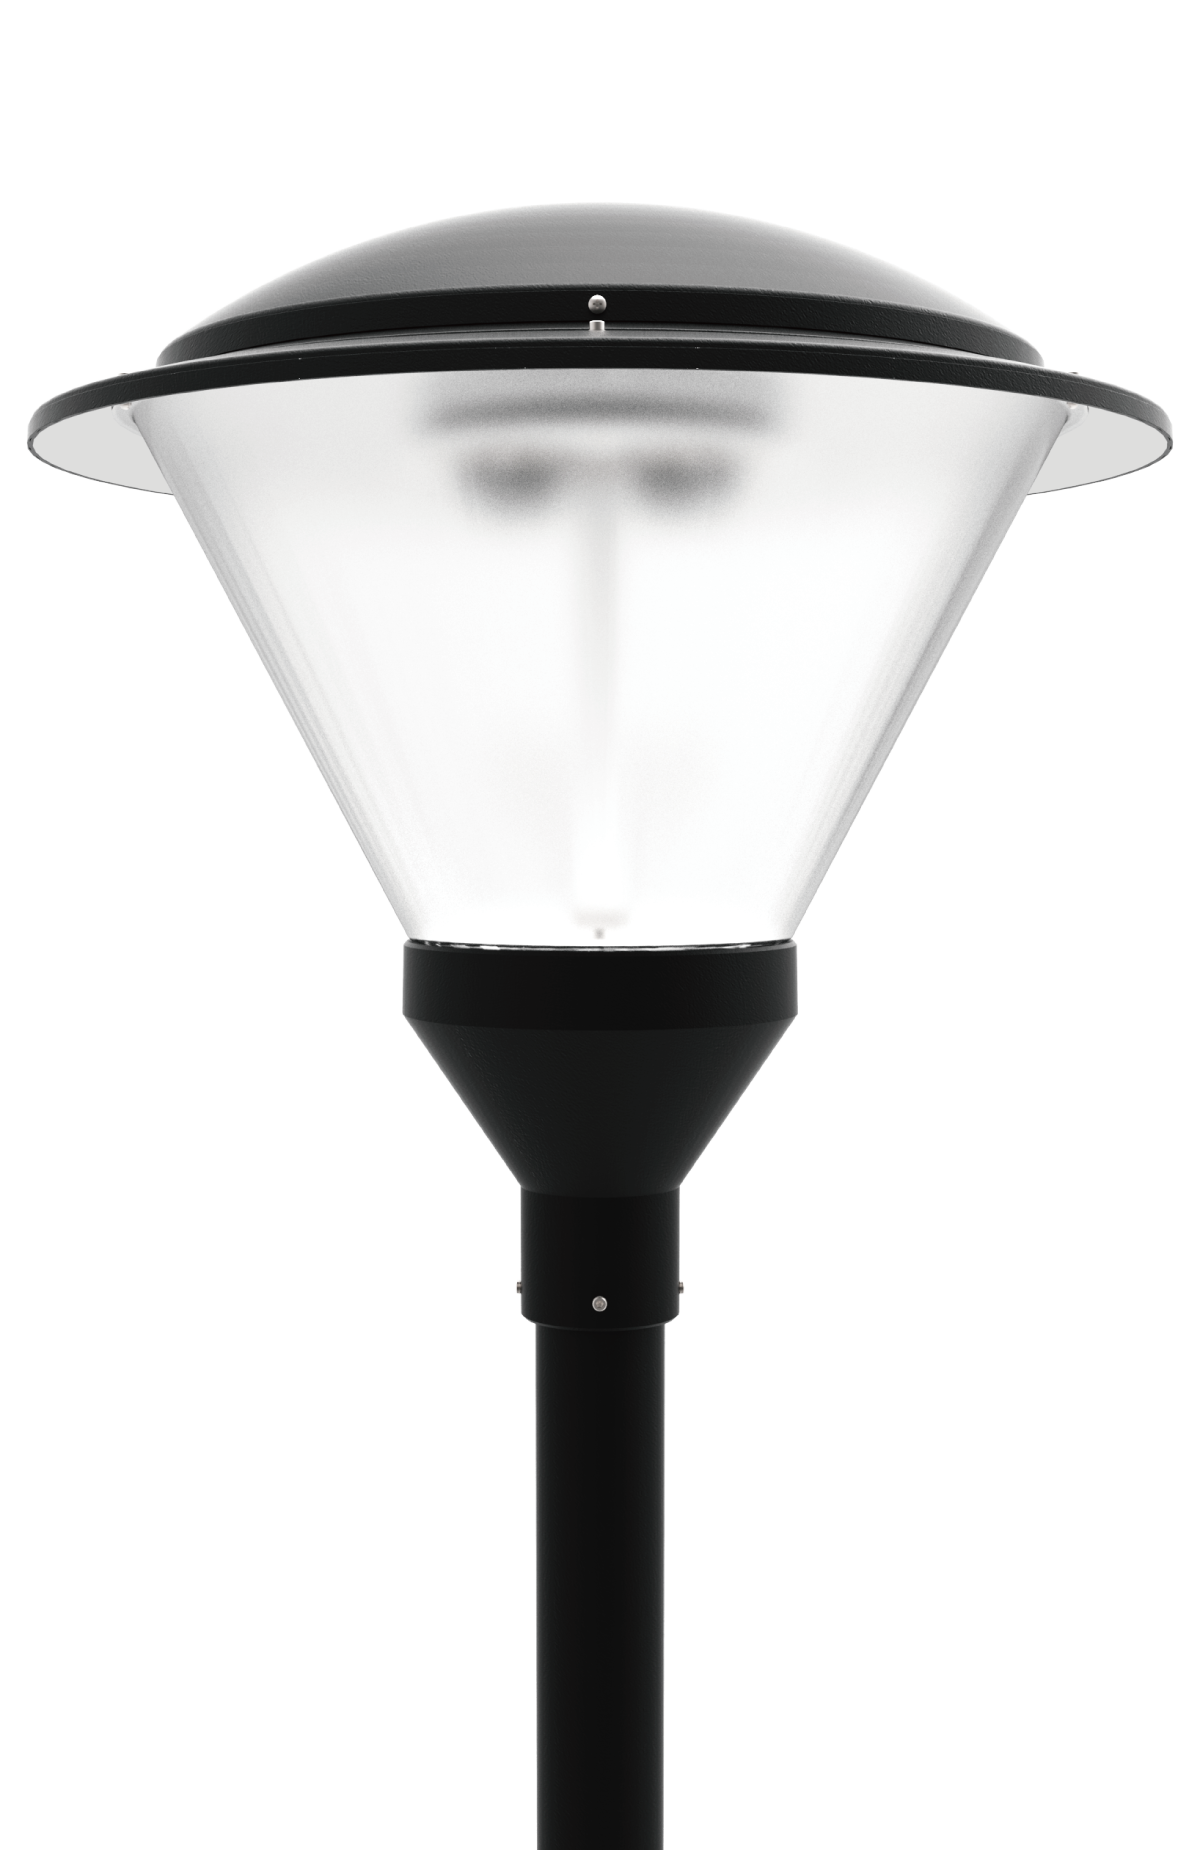 Led pt 642 series led post top light fixtures outdoor luminaires send us an email mozeypictures Choice Image